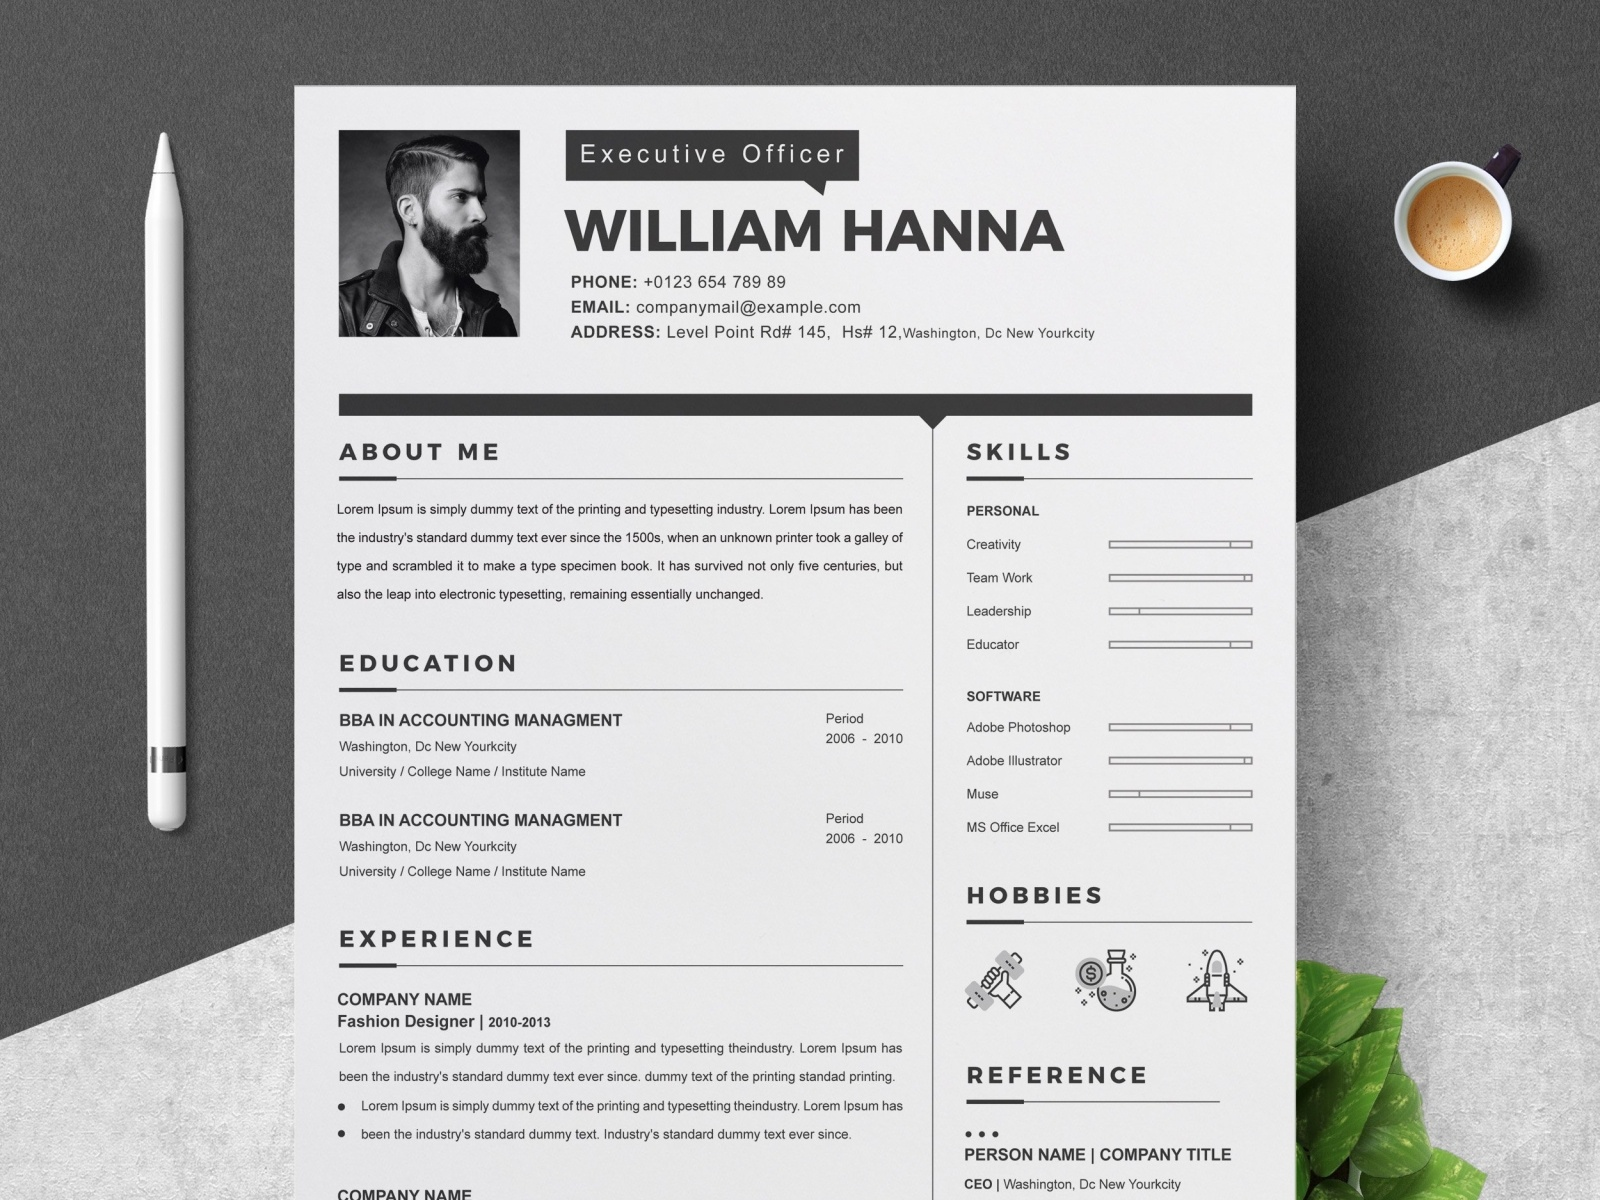 2 Page Resume Template/Cover Letter by Resume Templates on Dribbble